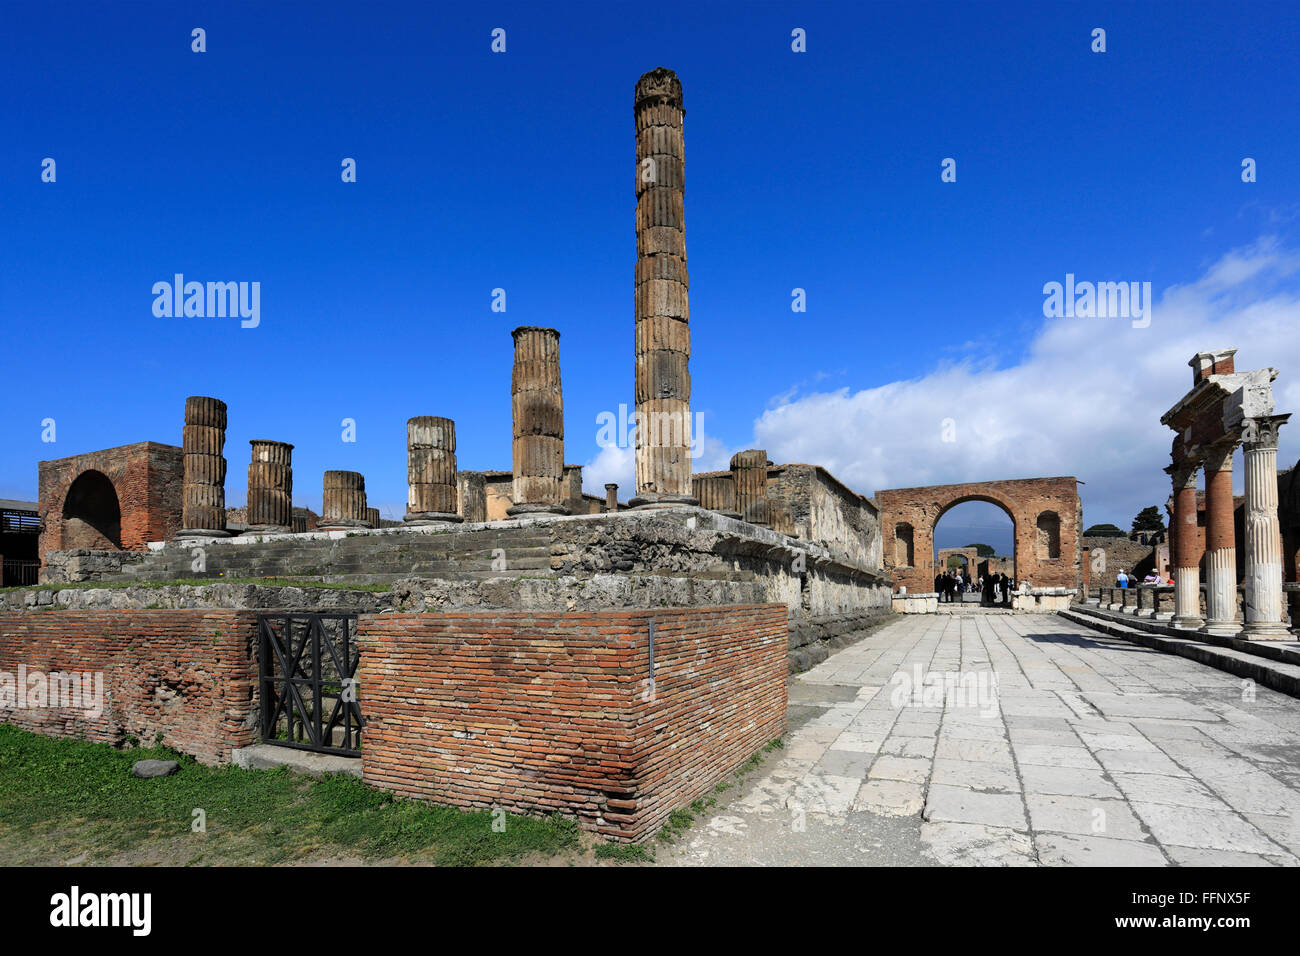 The Forum area of Pompeii, the Roman city buried in lava near Naples city, UNESCO World Heritage List 1997, Campania - Stock Image